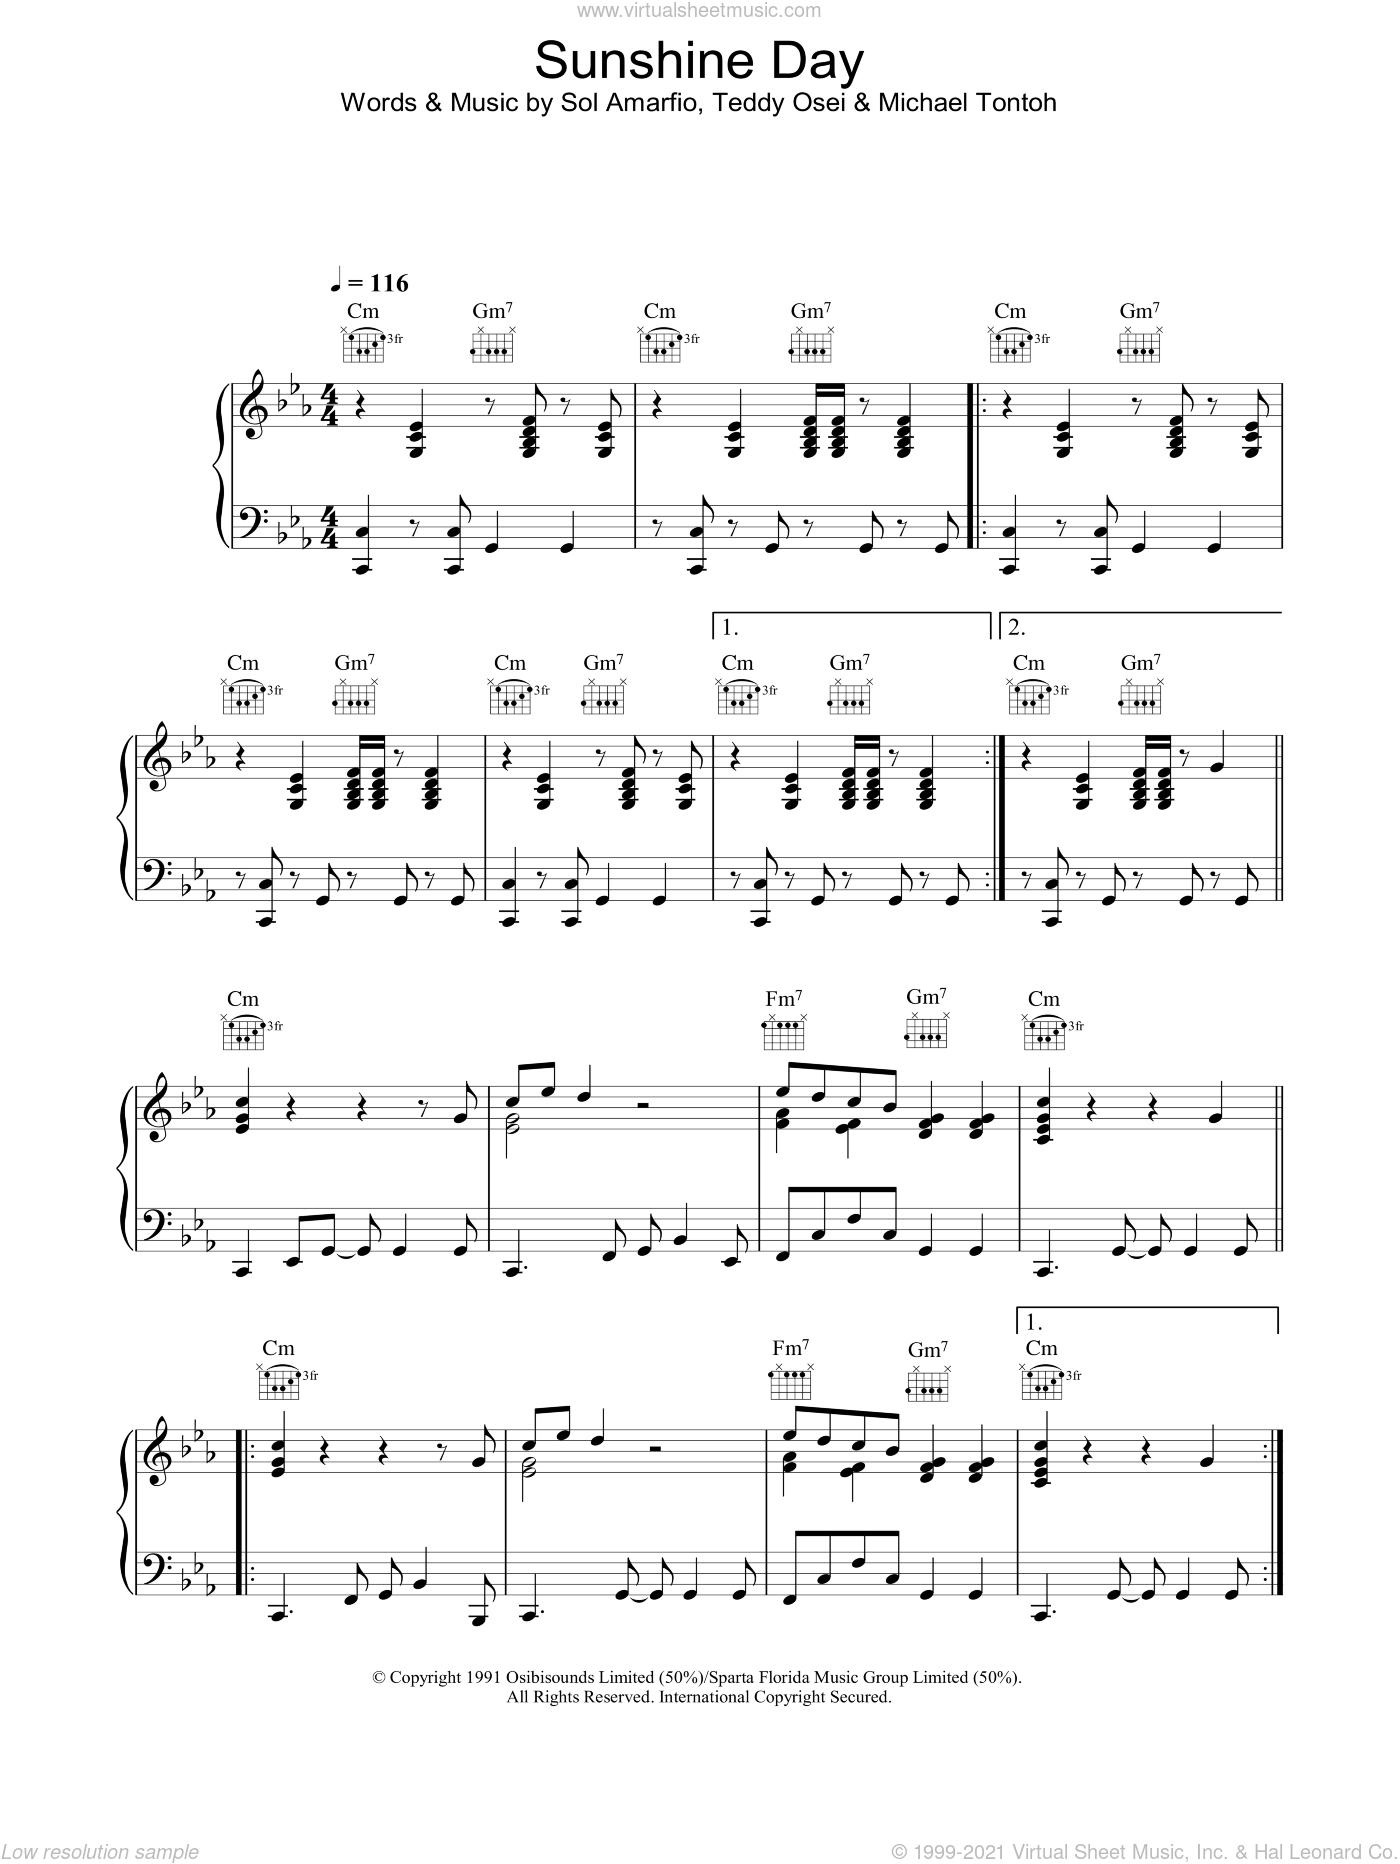 Sunshine Day sheet music for voice, piano or guitar by Teddy Osei